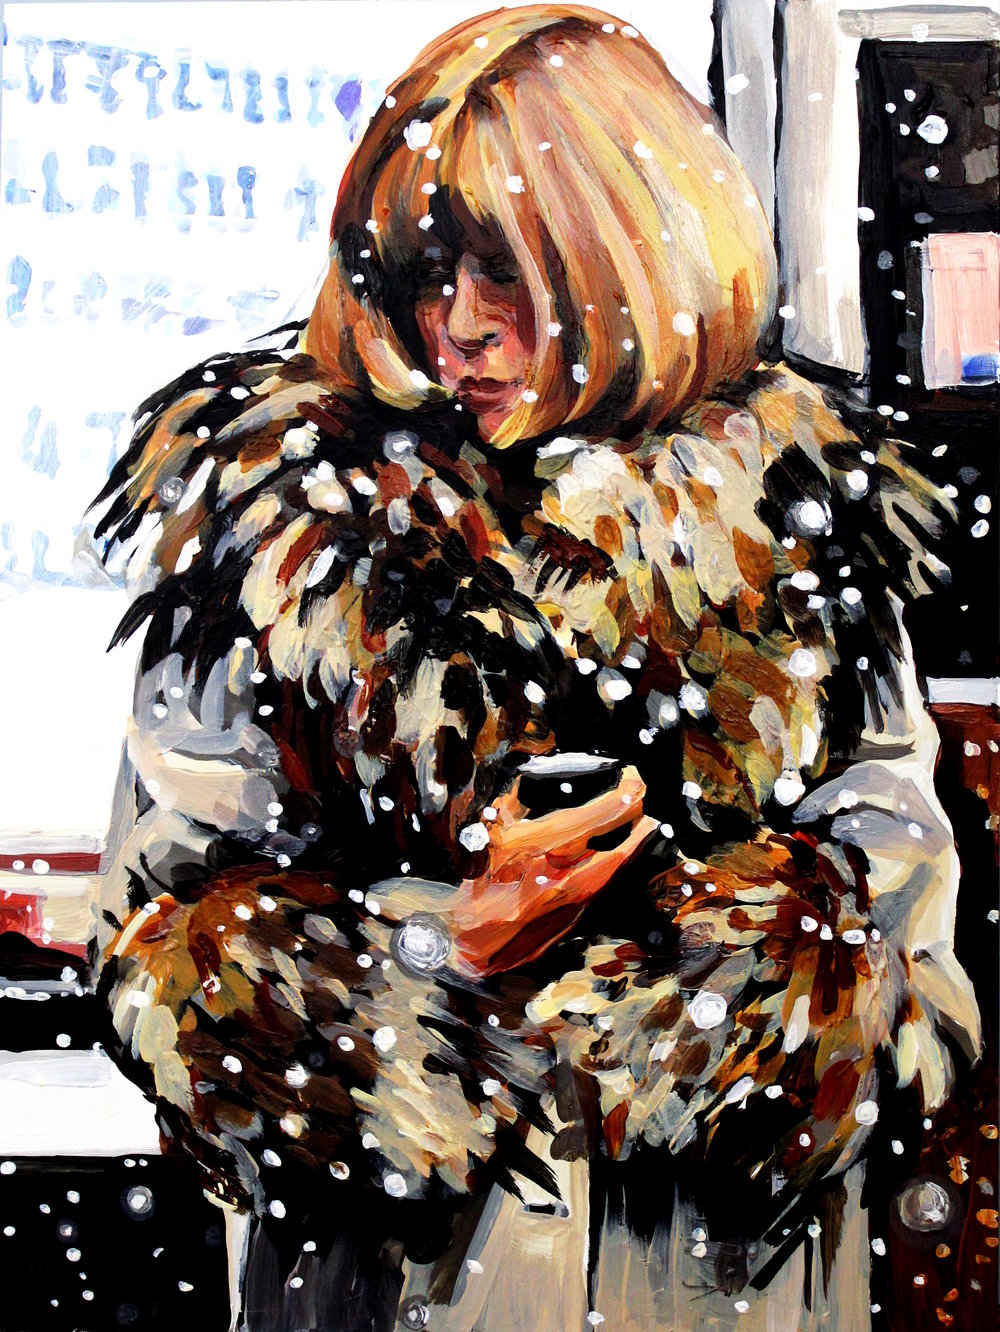 Laura Collins Anna Wintour in Winter 12x16 2017.JPG